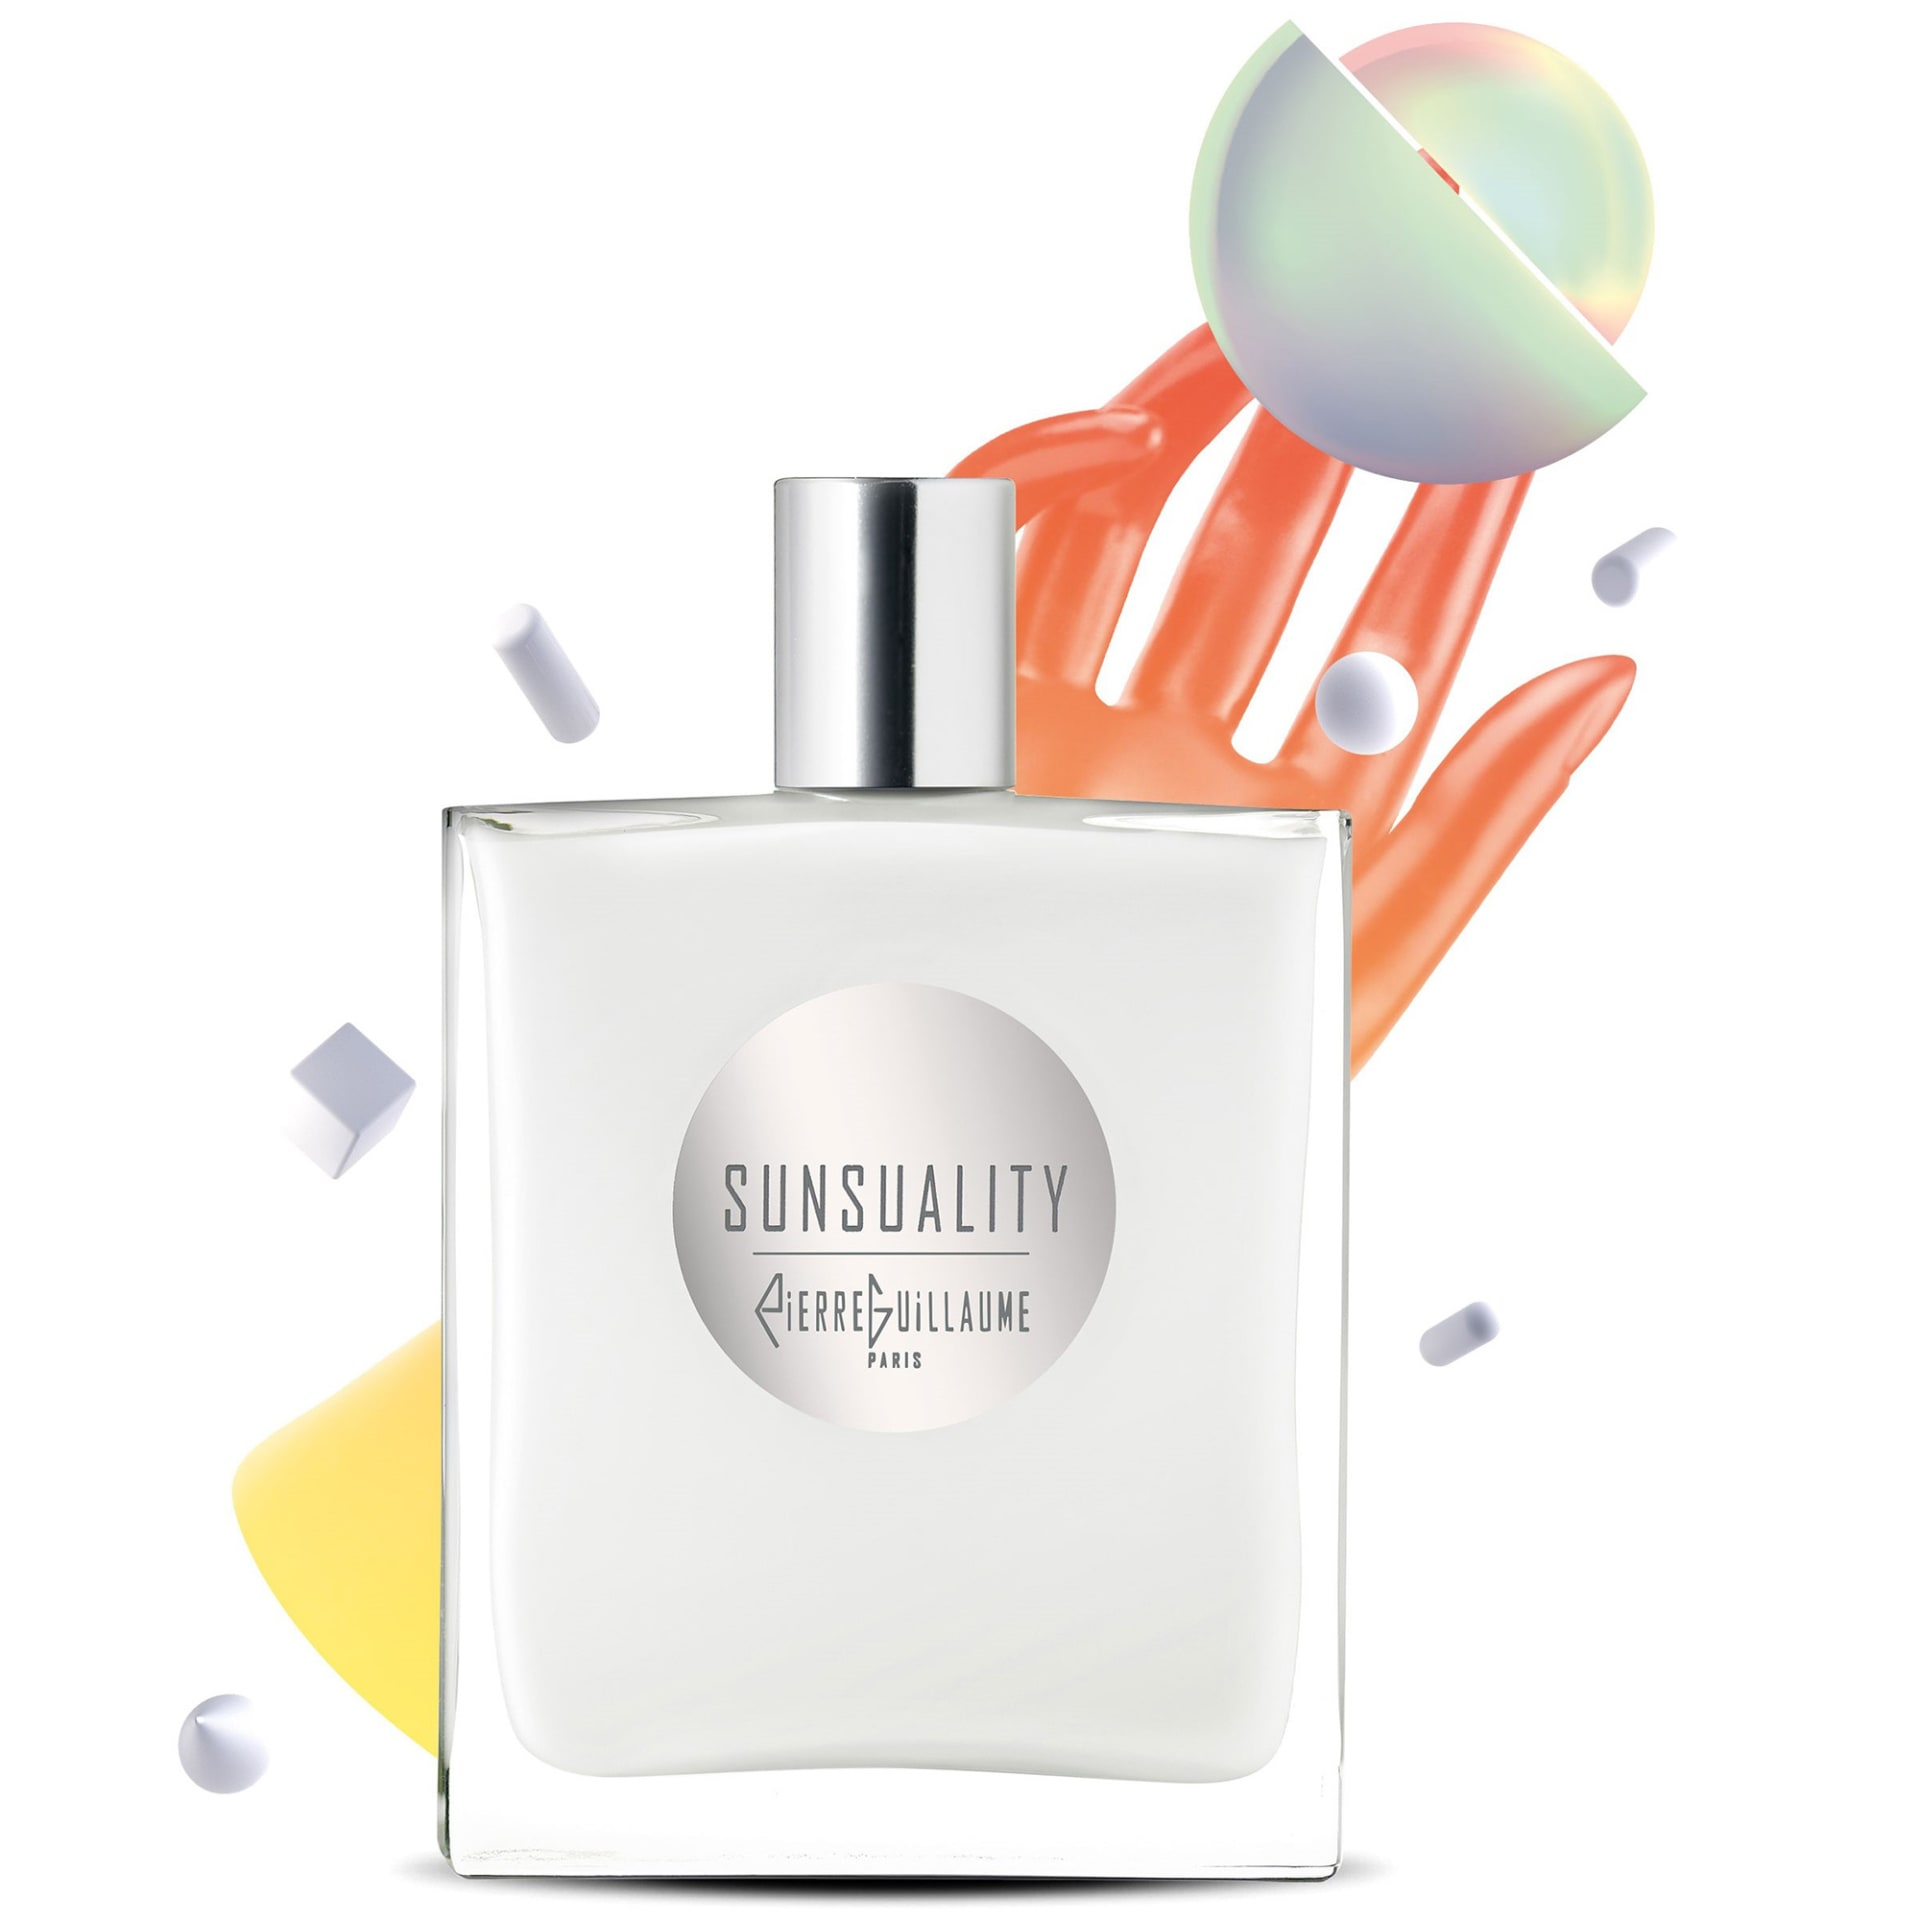 pierre-guillaume-collection-blanche-sunsuality